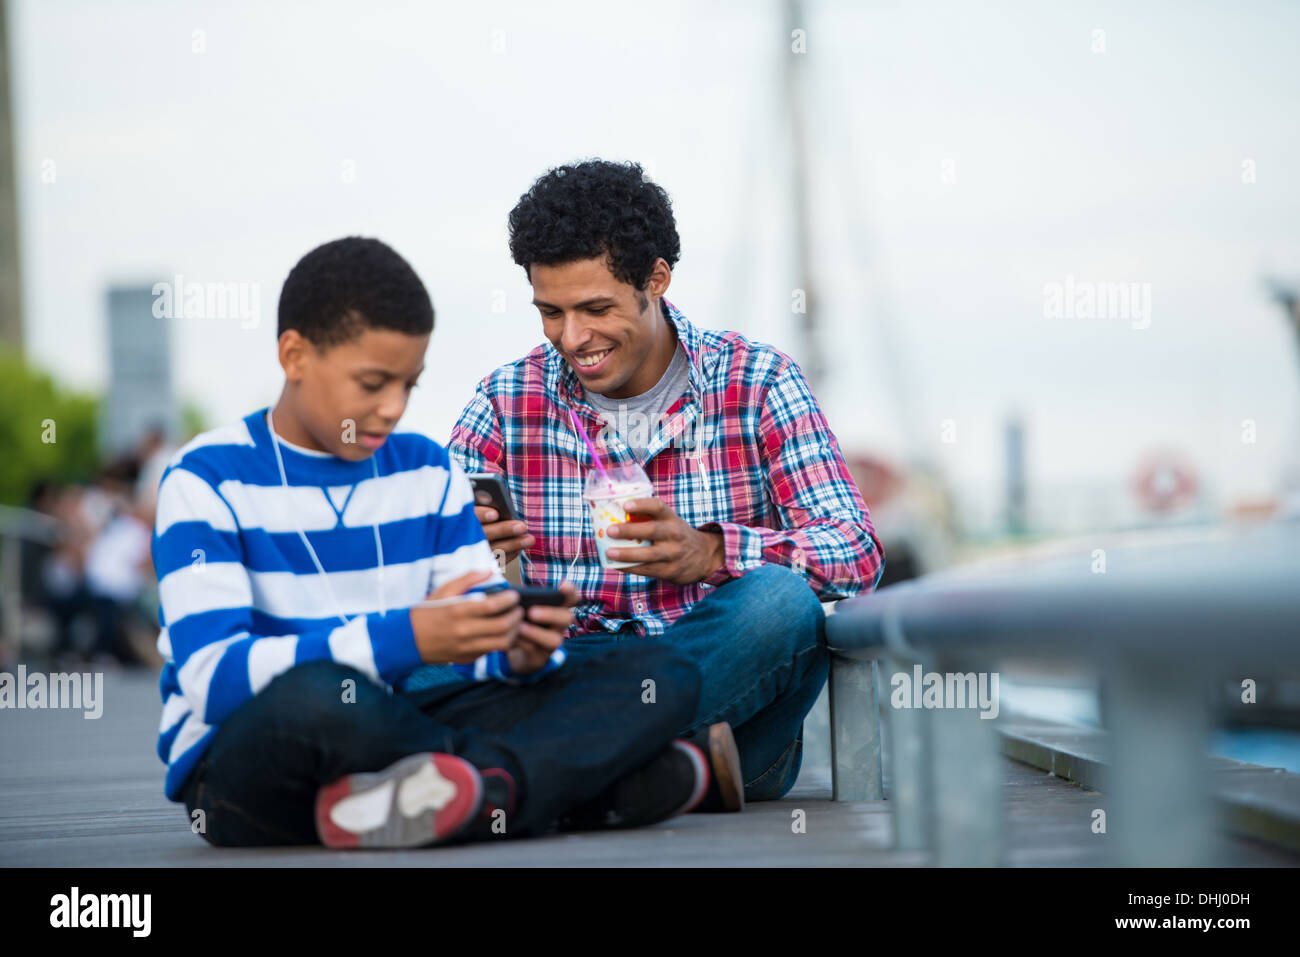 Boys day out - Stock Image